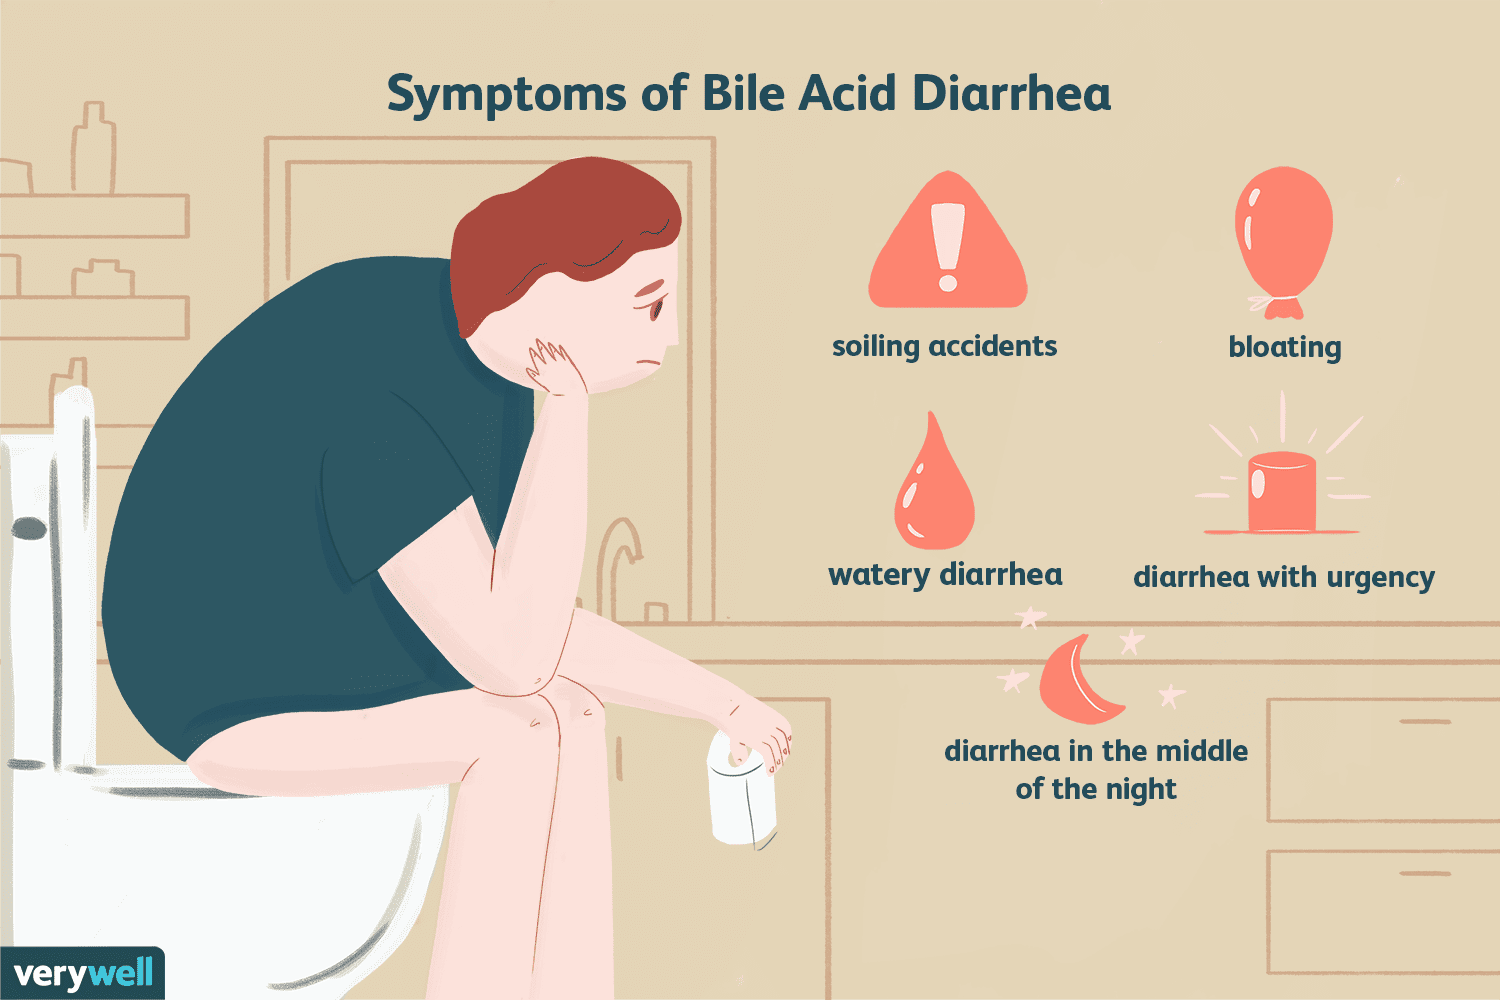 Understanding Bile Acid Diarrhea